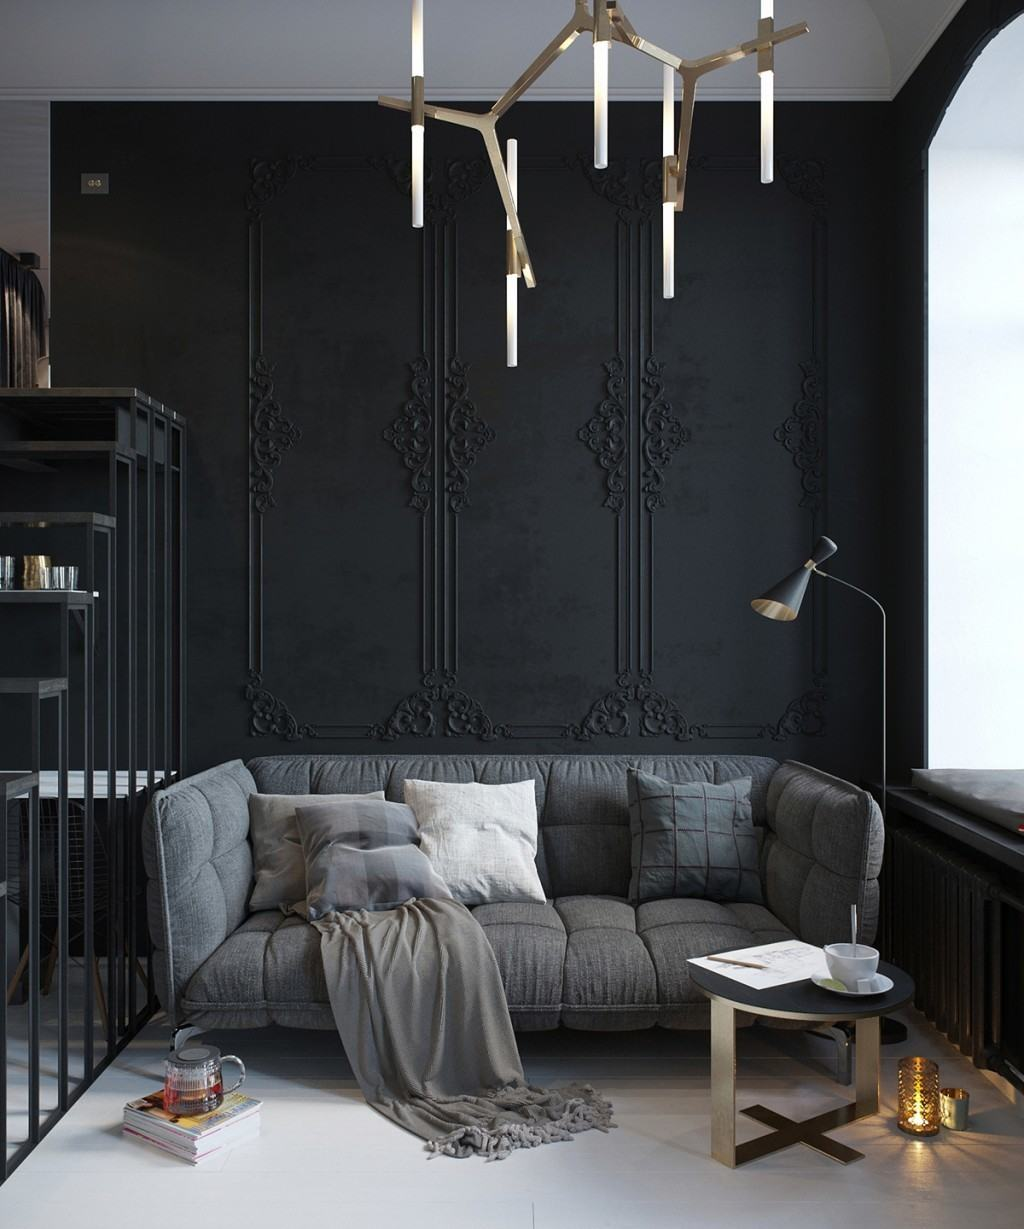 28 ideas for black wall interior styling for Black in interior design